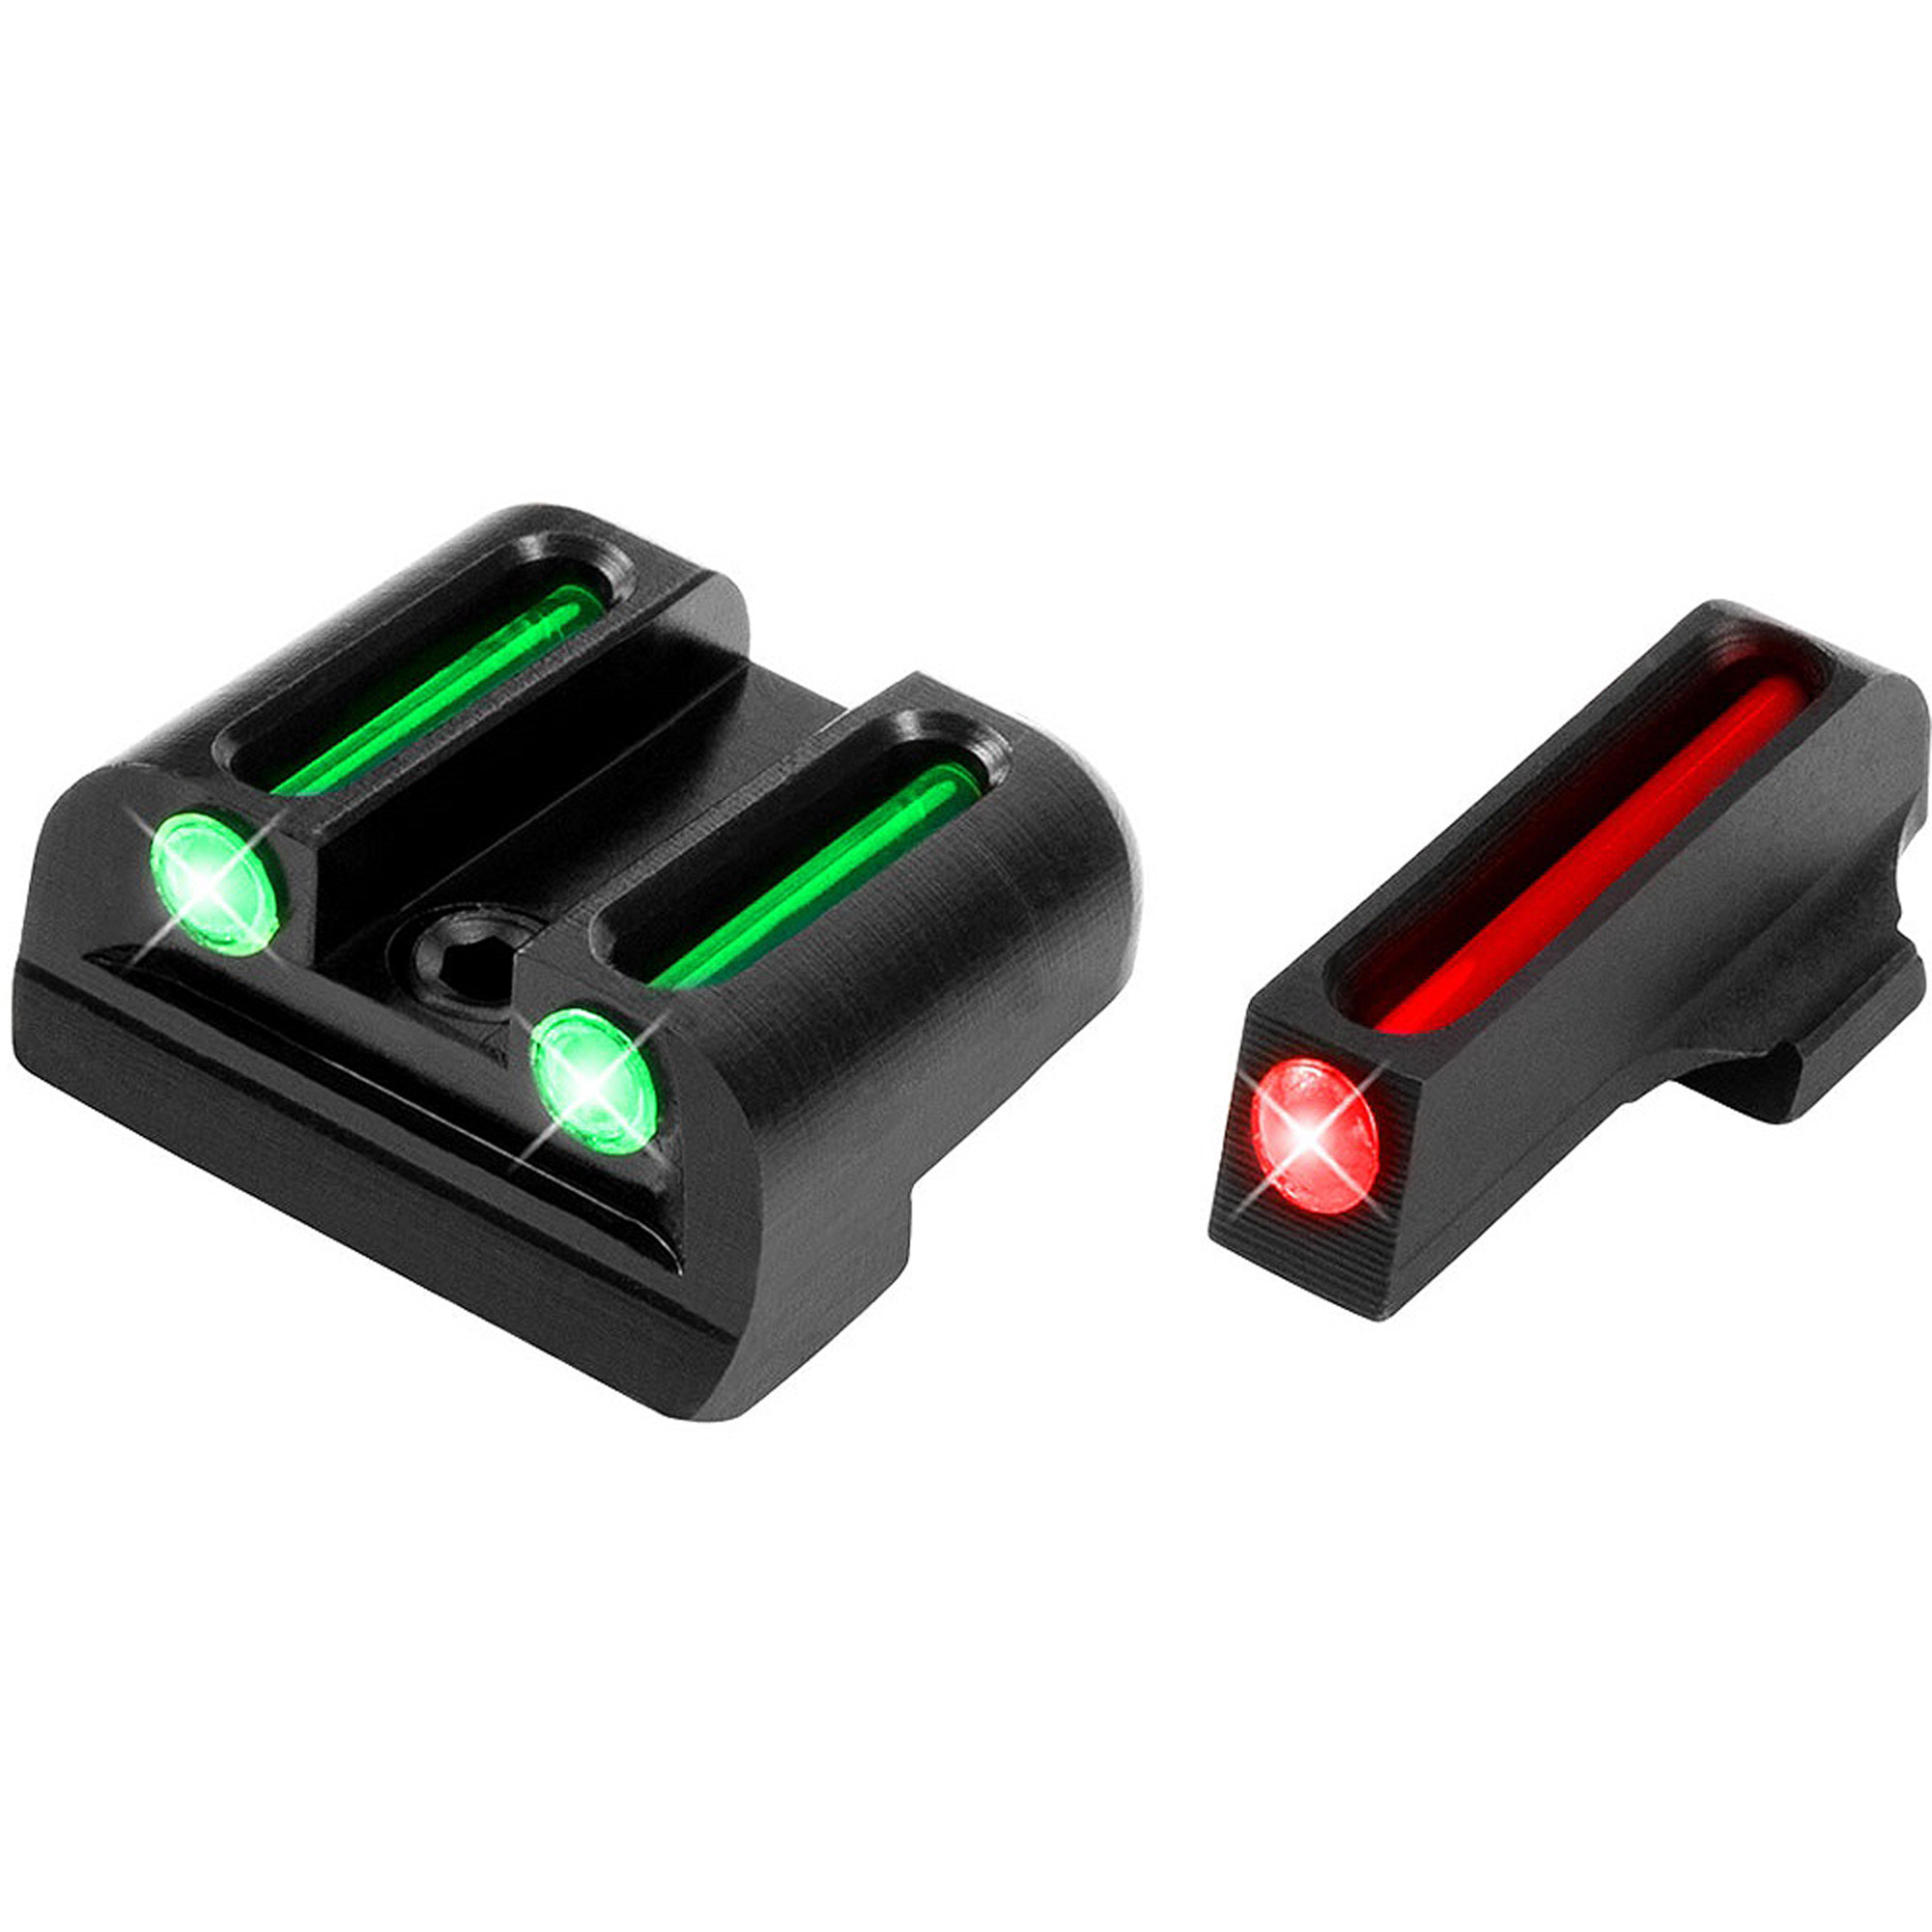 TRUGLO Brite-Site Fiber-Optic Handgun Sight, Sig 6/8 Set